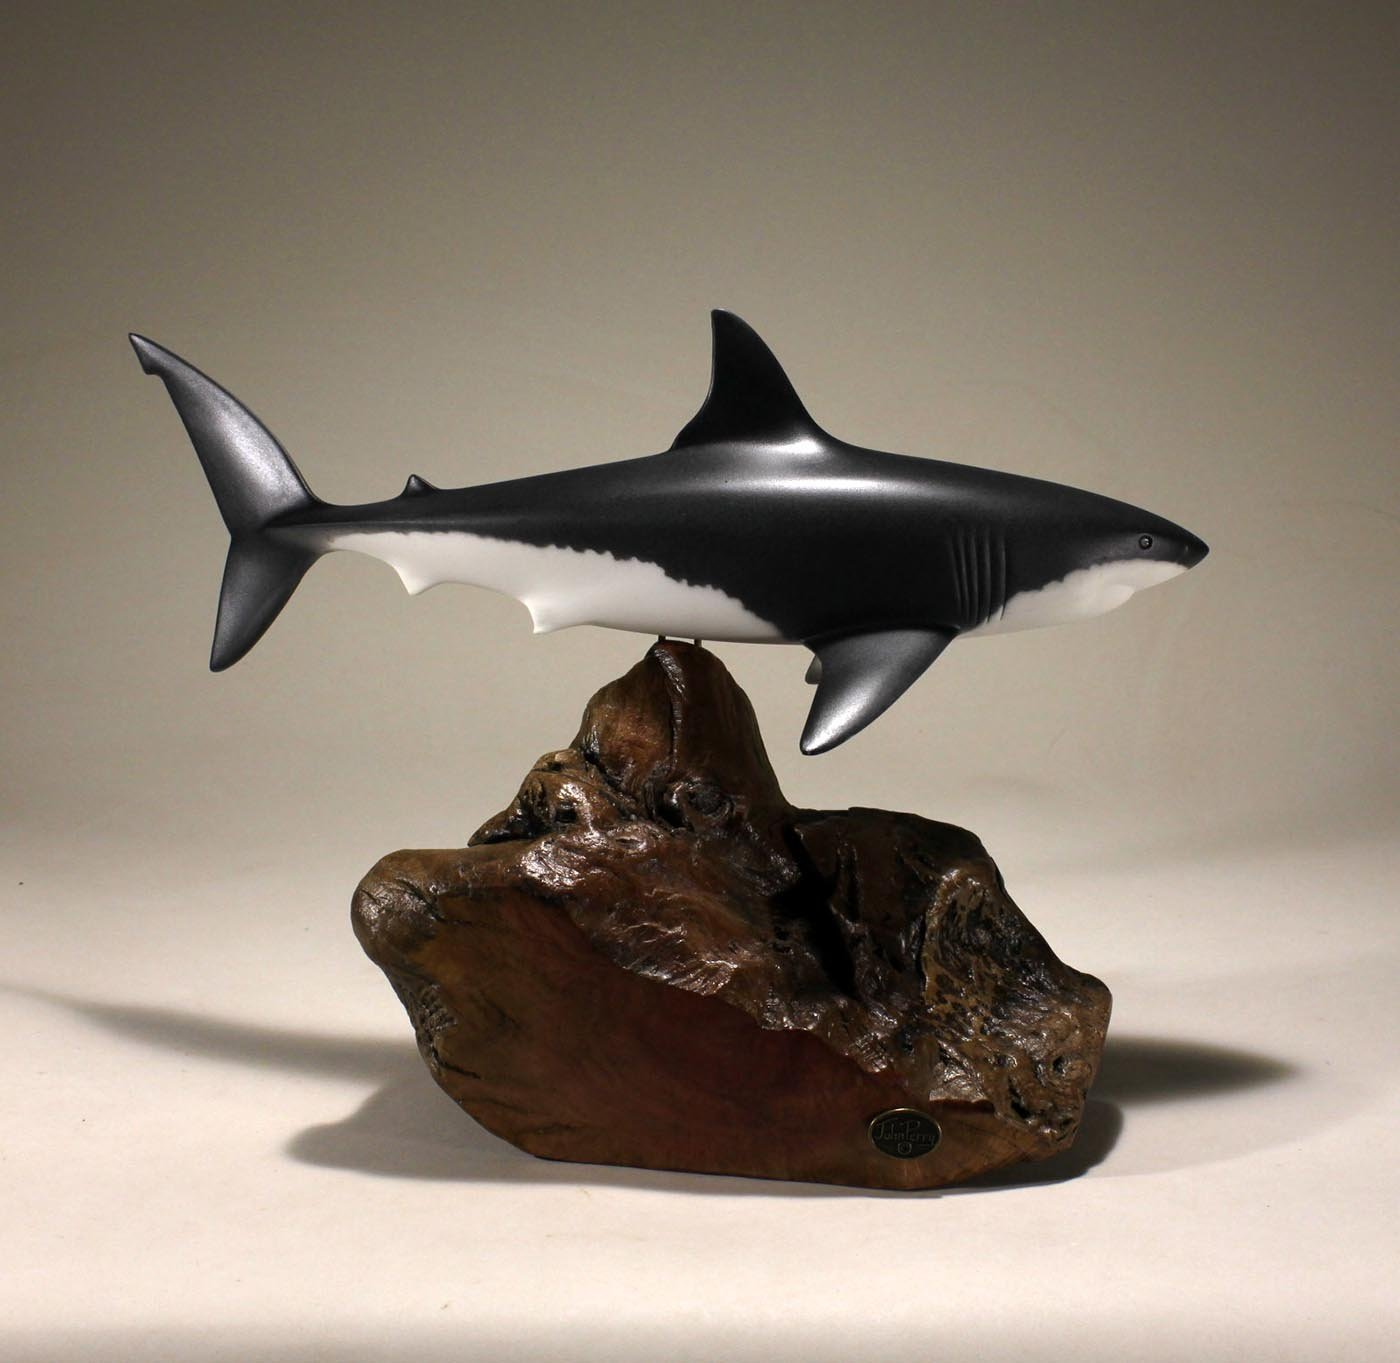 Great White Shark Sculpture by John Perry 15in Long Airbrushed on Burl Wood Decor by John Perry Studio